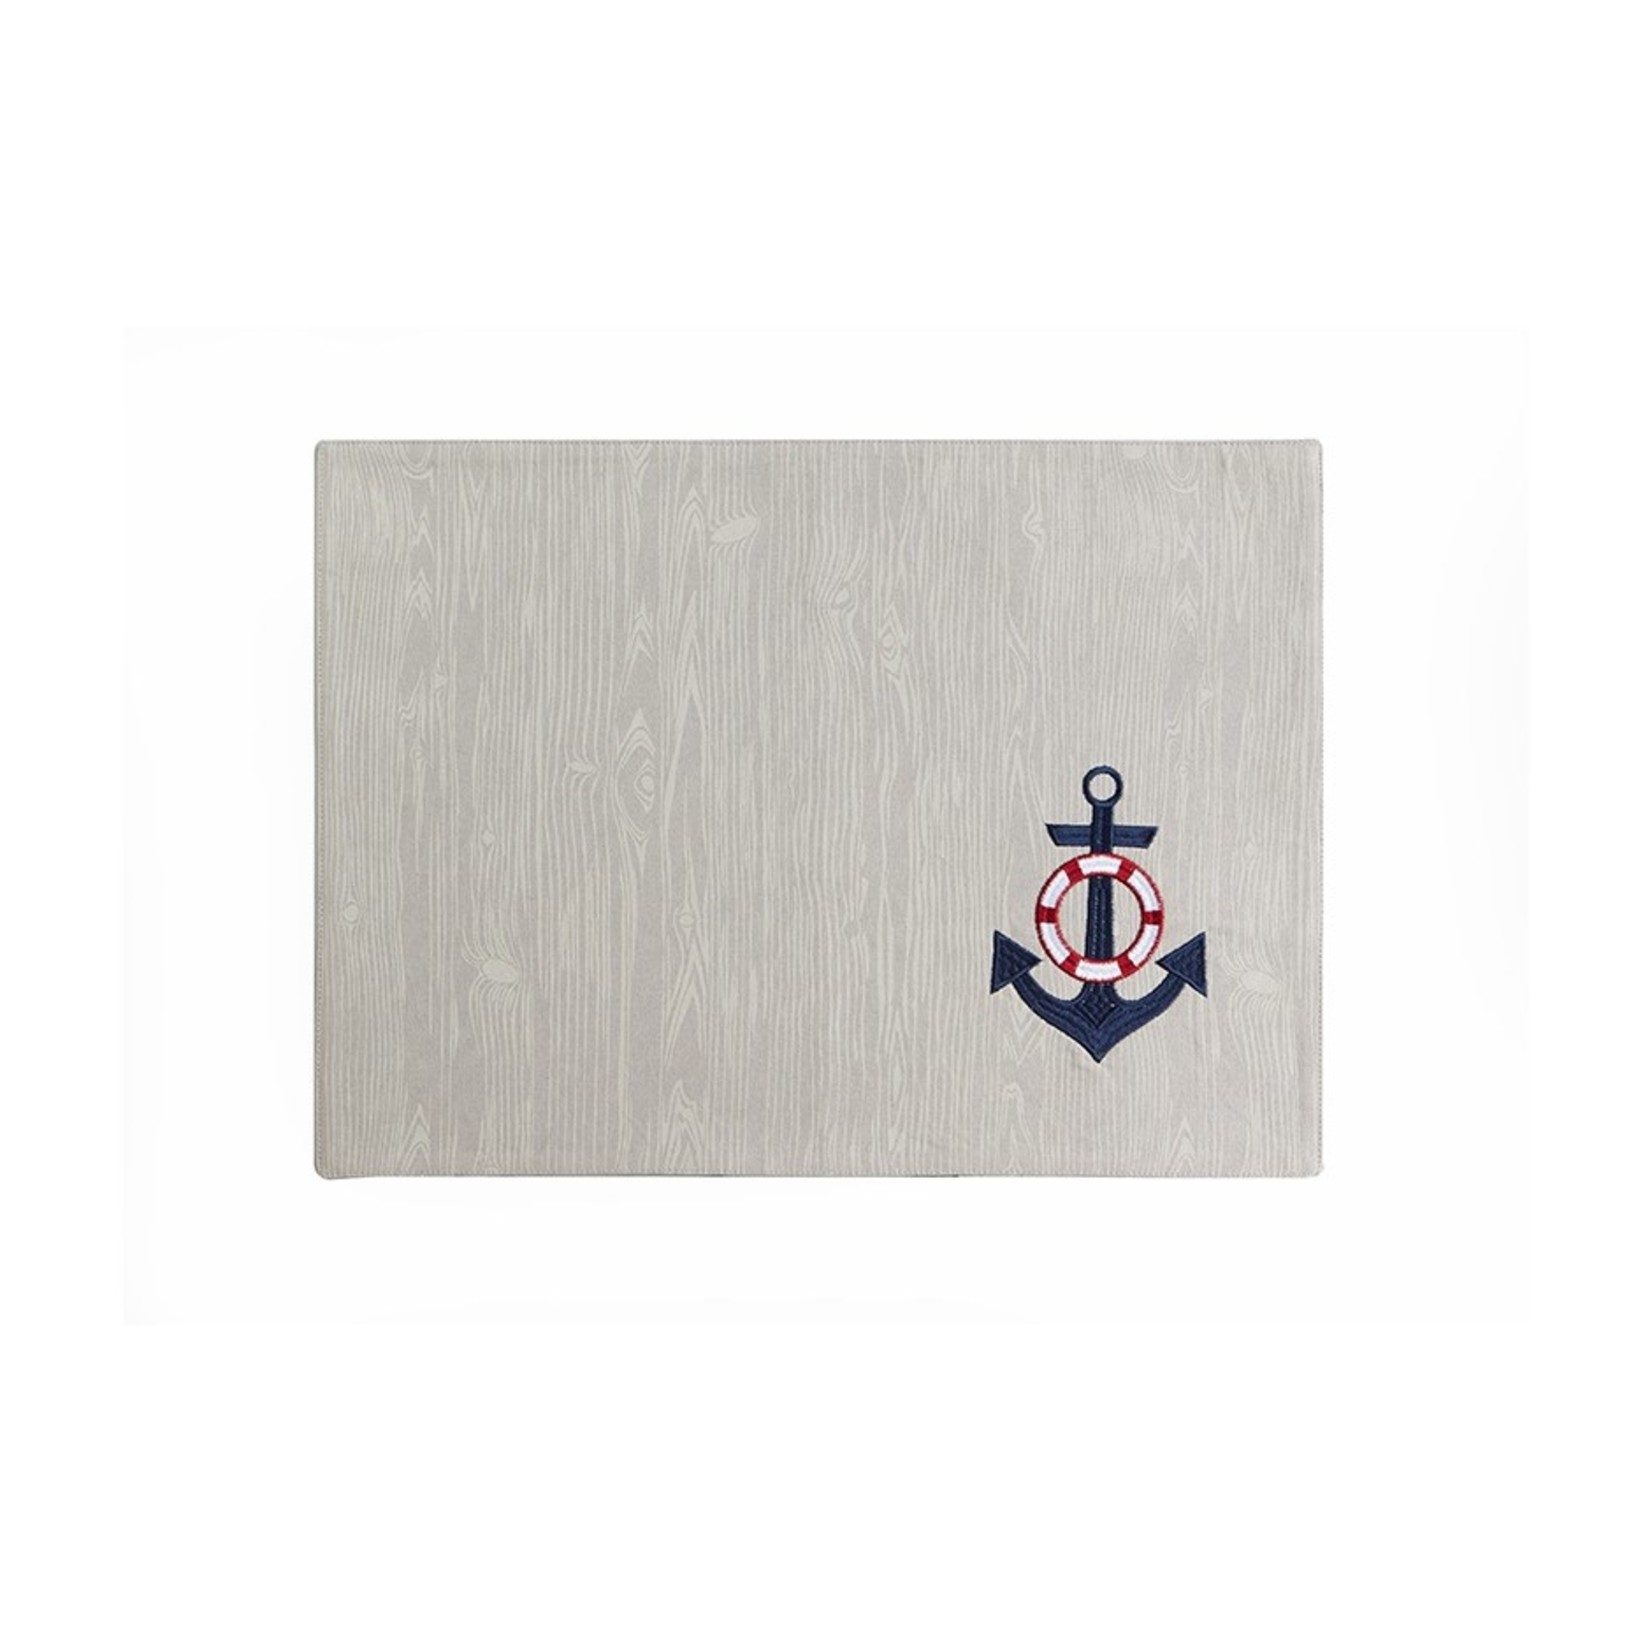 NEW NAUTICAL PLACEMAT BLUE